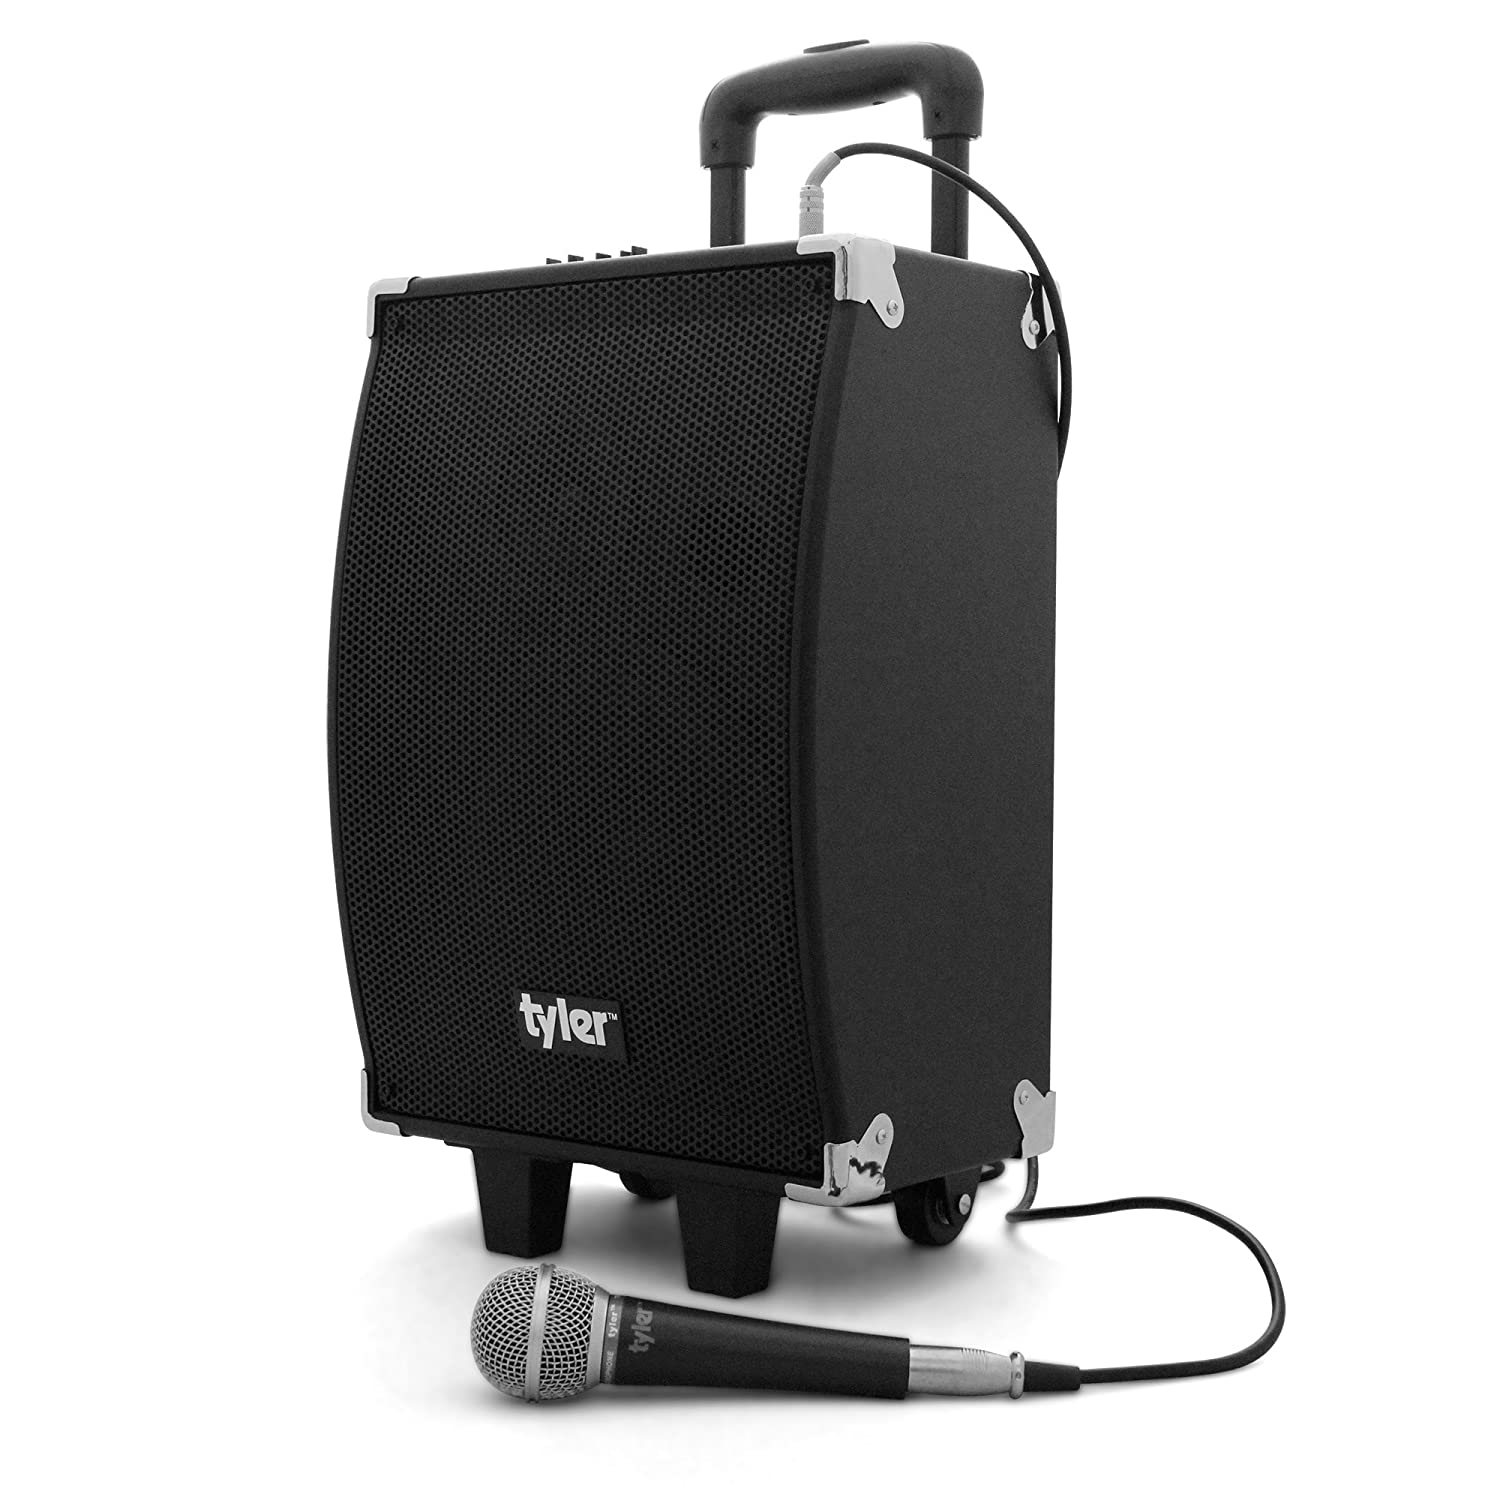 portable bluetooth speakers on wheels. amazon.com: tyler tailgate portable wireless bluetooth speaker pa system tws404-bk with microphone input, built-in amplifier + equalizer, guitar jack speakers on wheels .